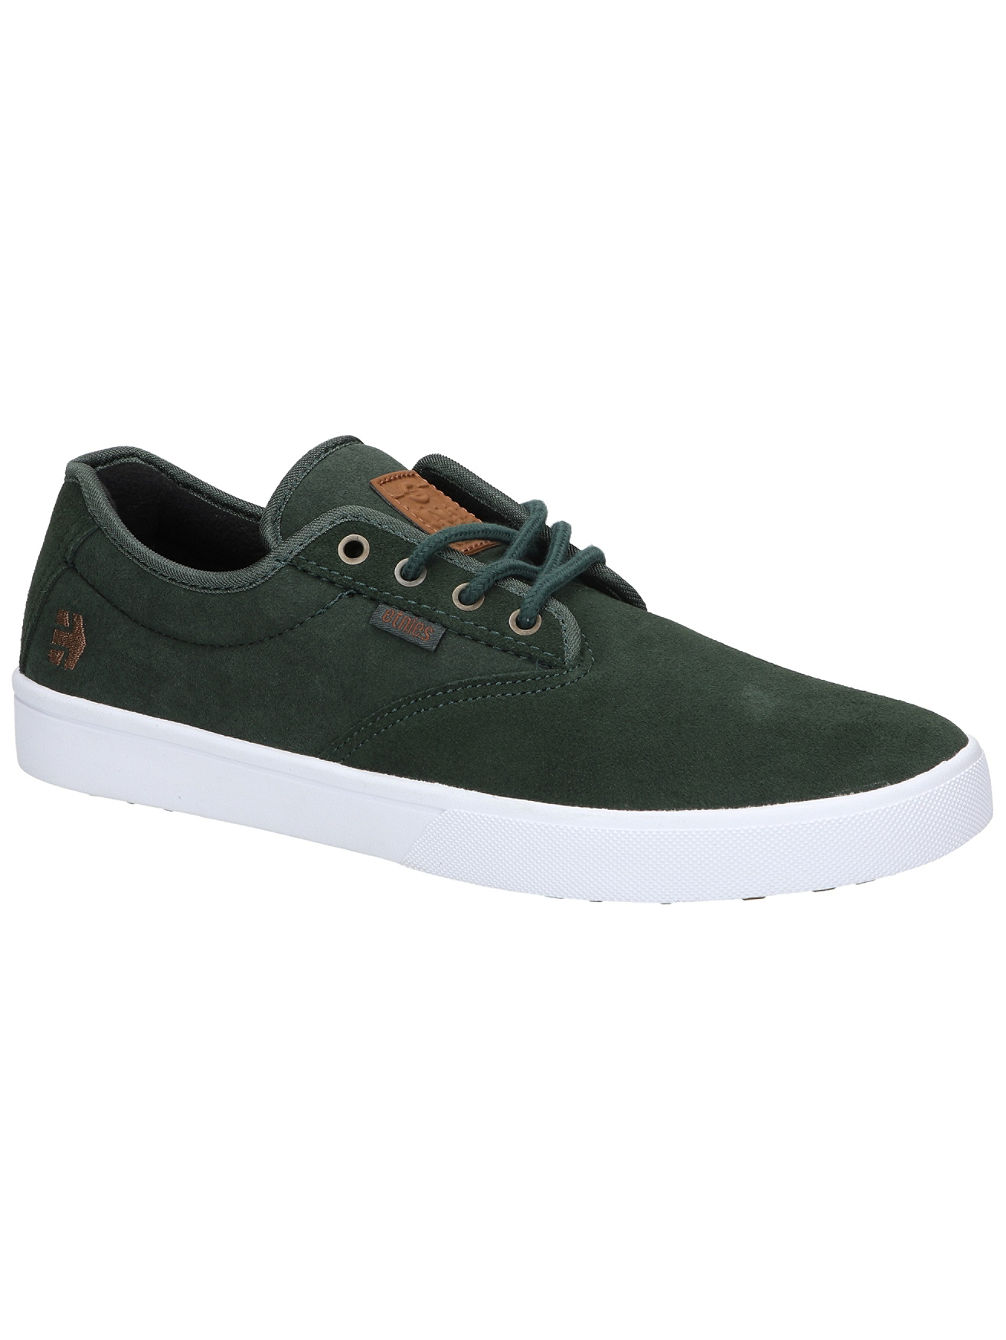 Jameson SLW Shoes